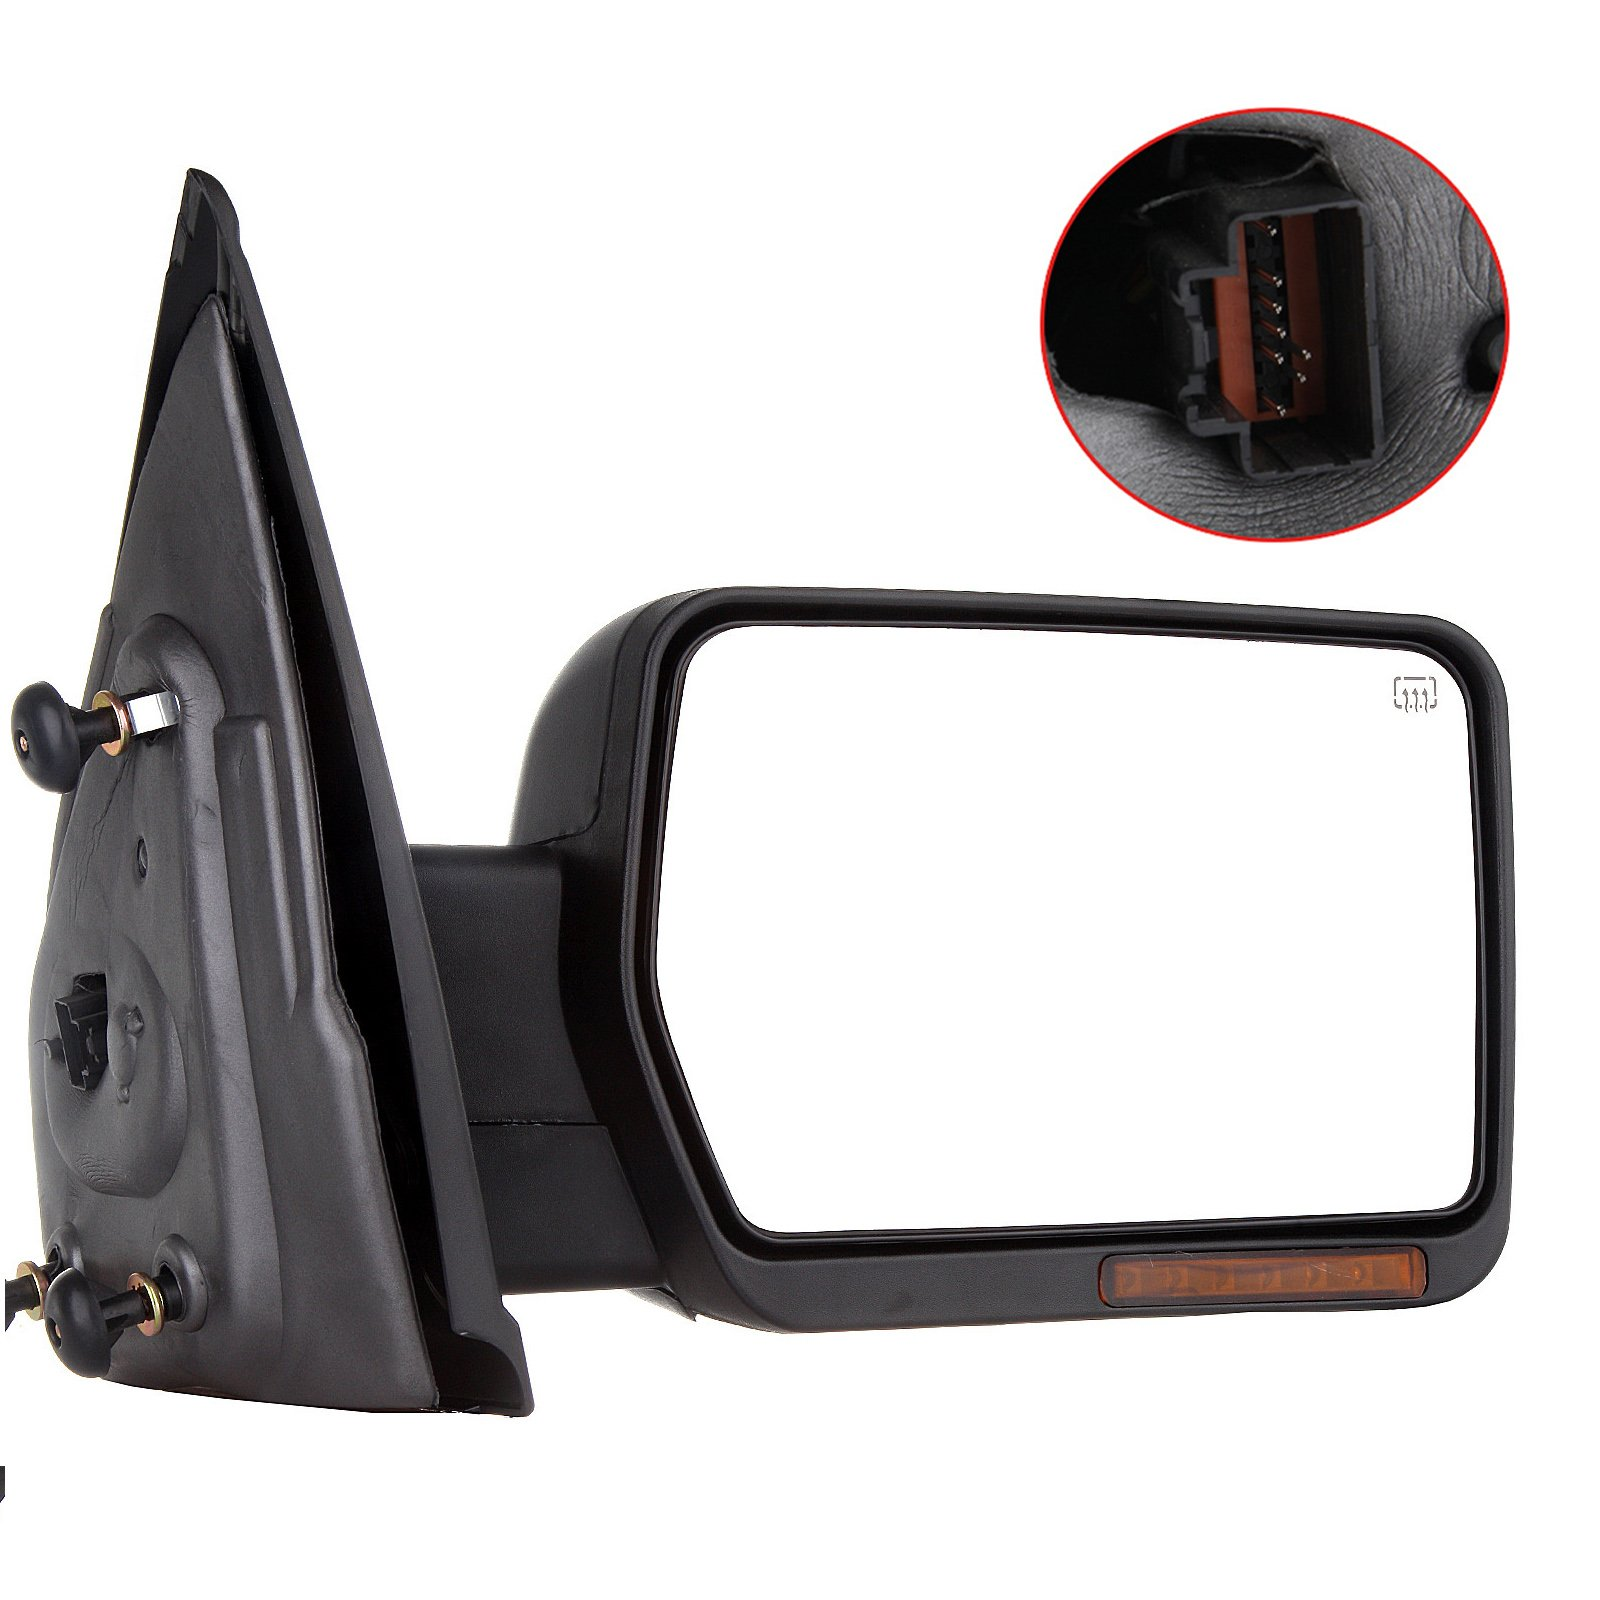 SCITOO Towing Mirrors, fit Ford Exterior Accessories Mirrors fit 2007-2014 Ford F-150 Truck with Amber Turn Signal and Puddle Light Heated Power Controlling and Manual Folding (Passenger Side) by SCITOO